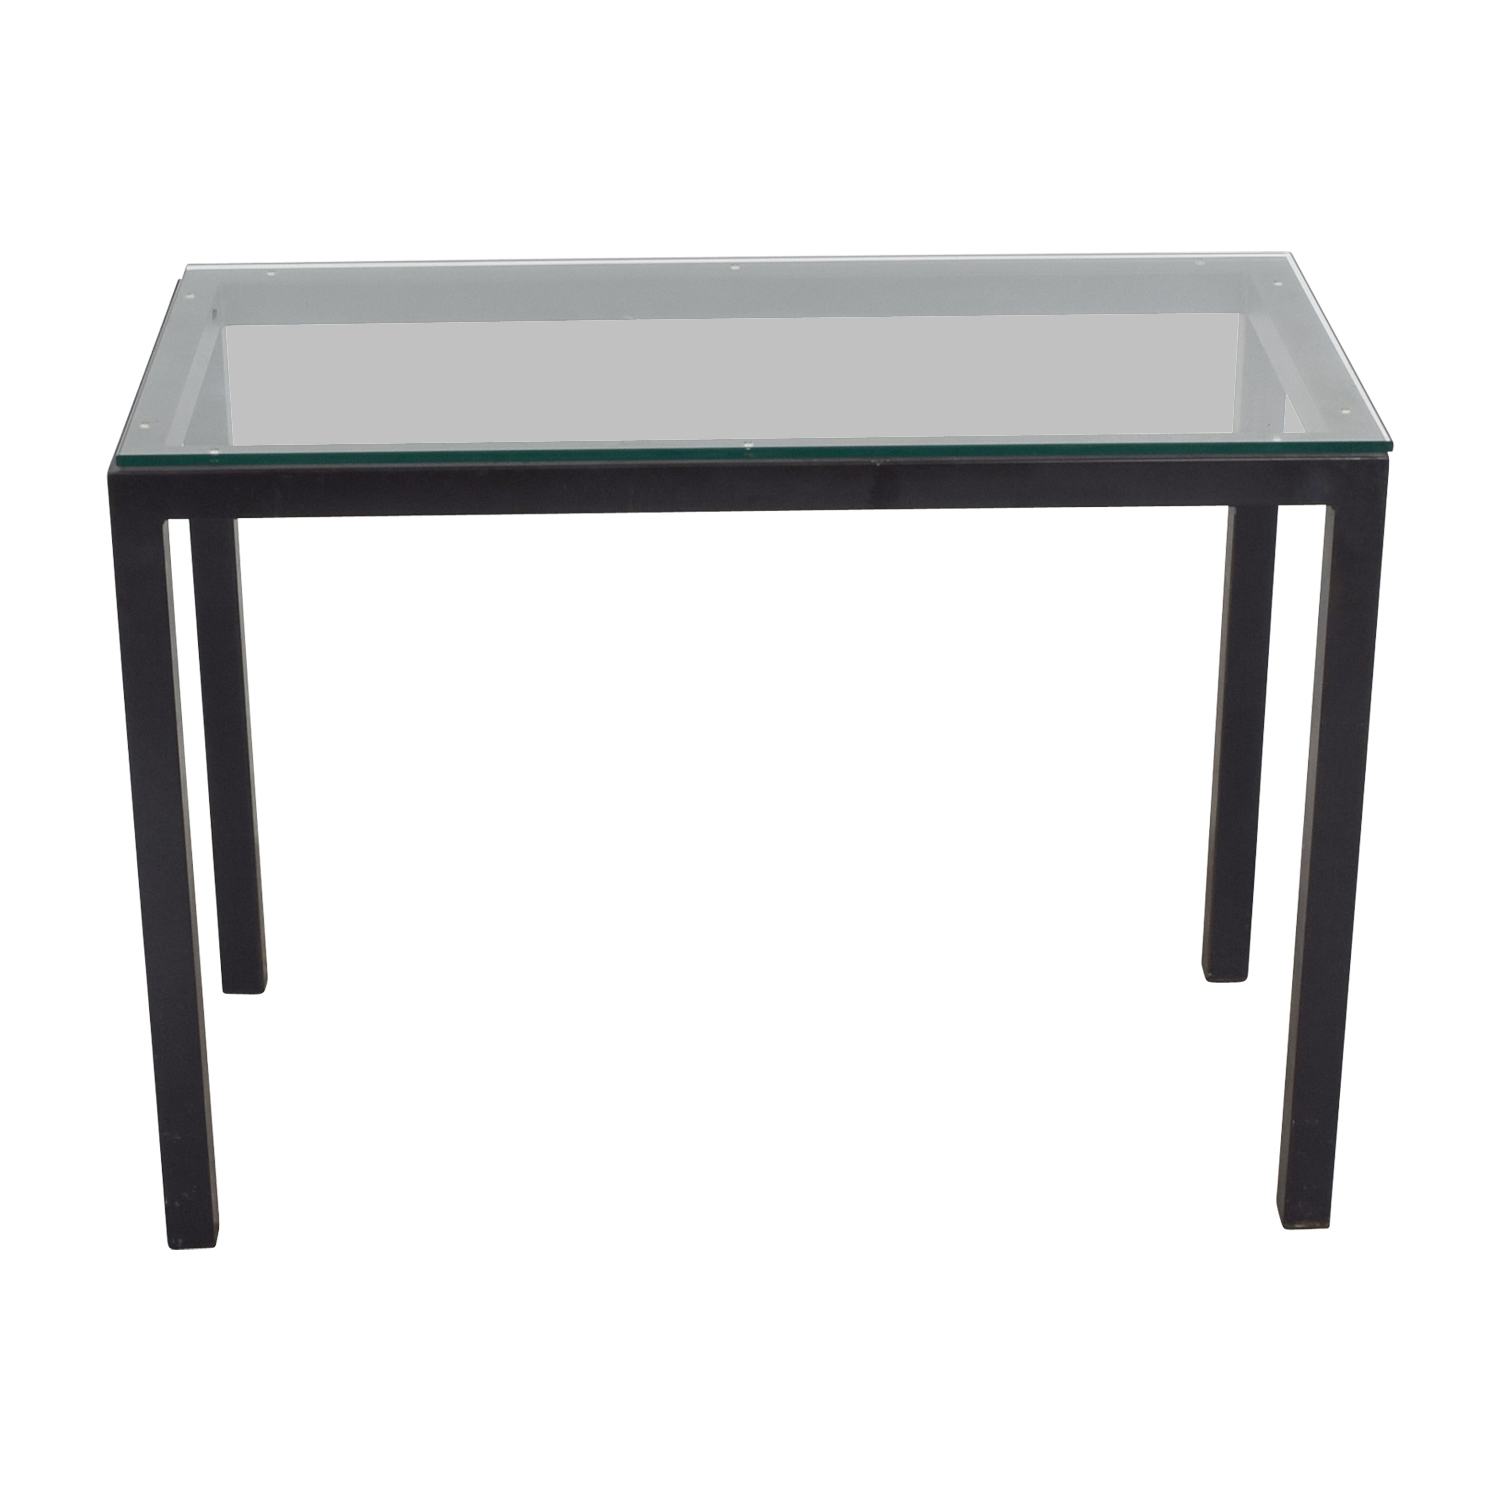 Room & Board Room & Board Parsons Glass and Black Table on sale